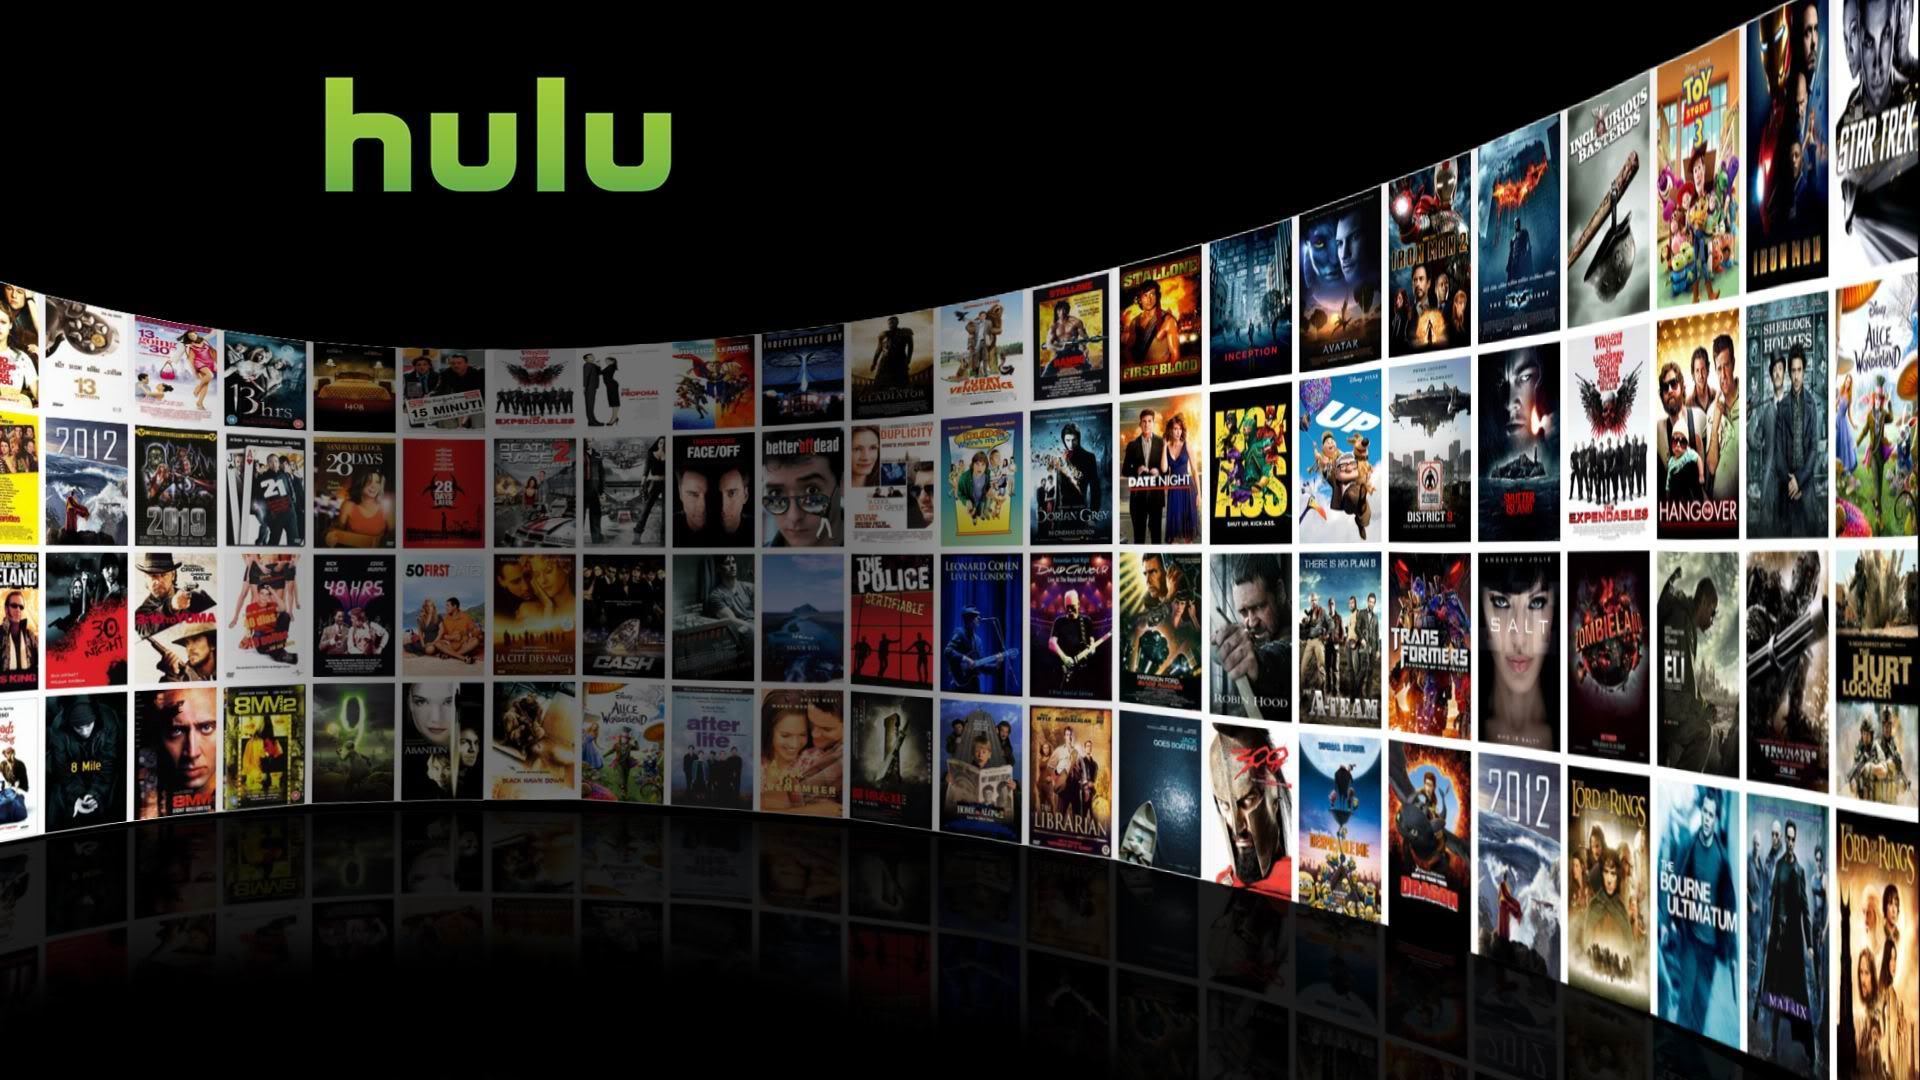 The three owners of the video streaming website Hulu announced today ...